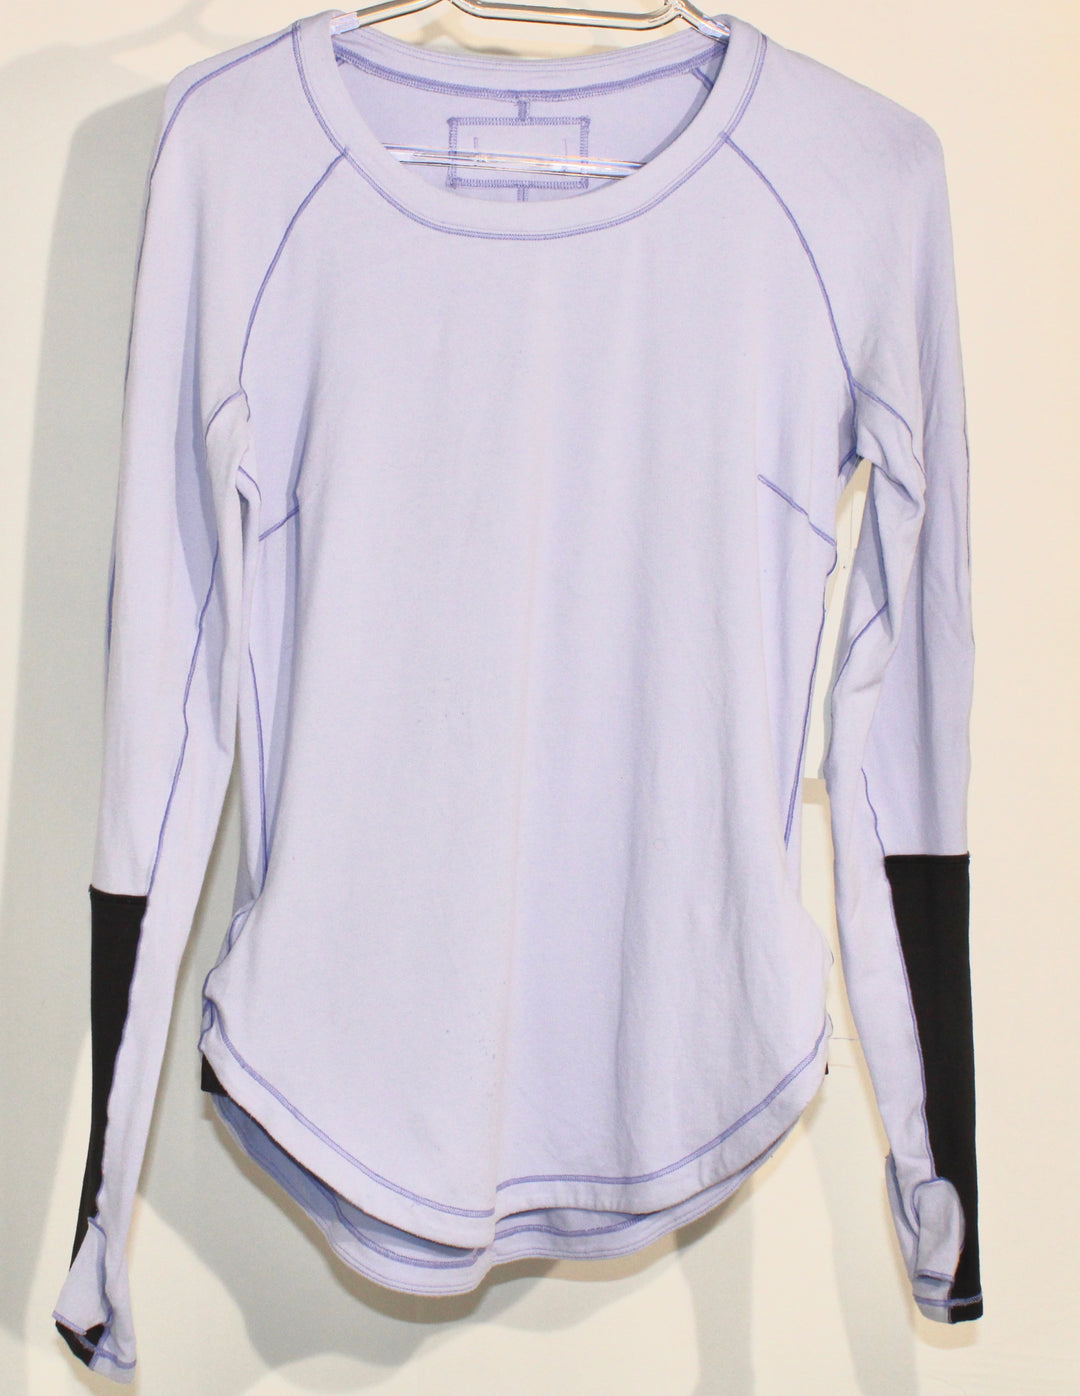 Primary Photo - BRAND: LULULEMON <BR>STYLE: ATHLETIC TOP <BR>COLOR: LILAC <BR>SIZE: 4 <BR>SKU: 262-26285-2692<BR><BR>GENTLE WEAR AS IS <BR>DESIGNER FINAL